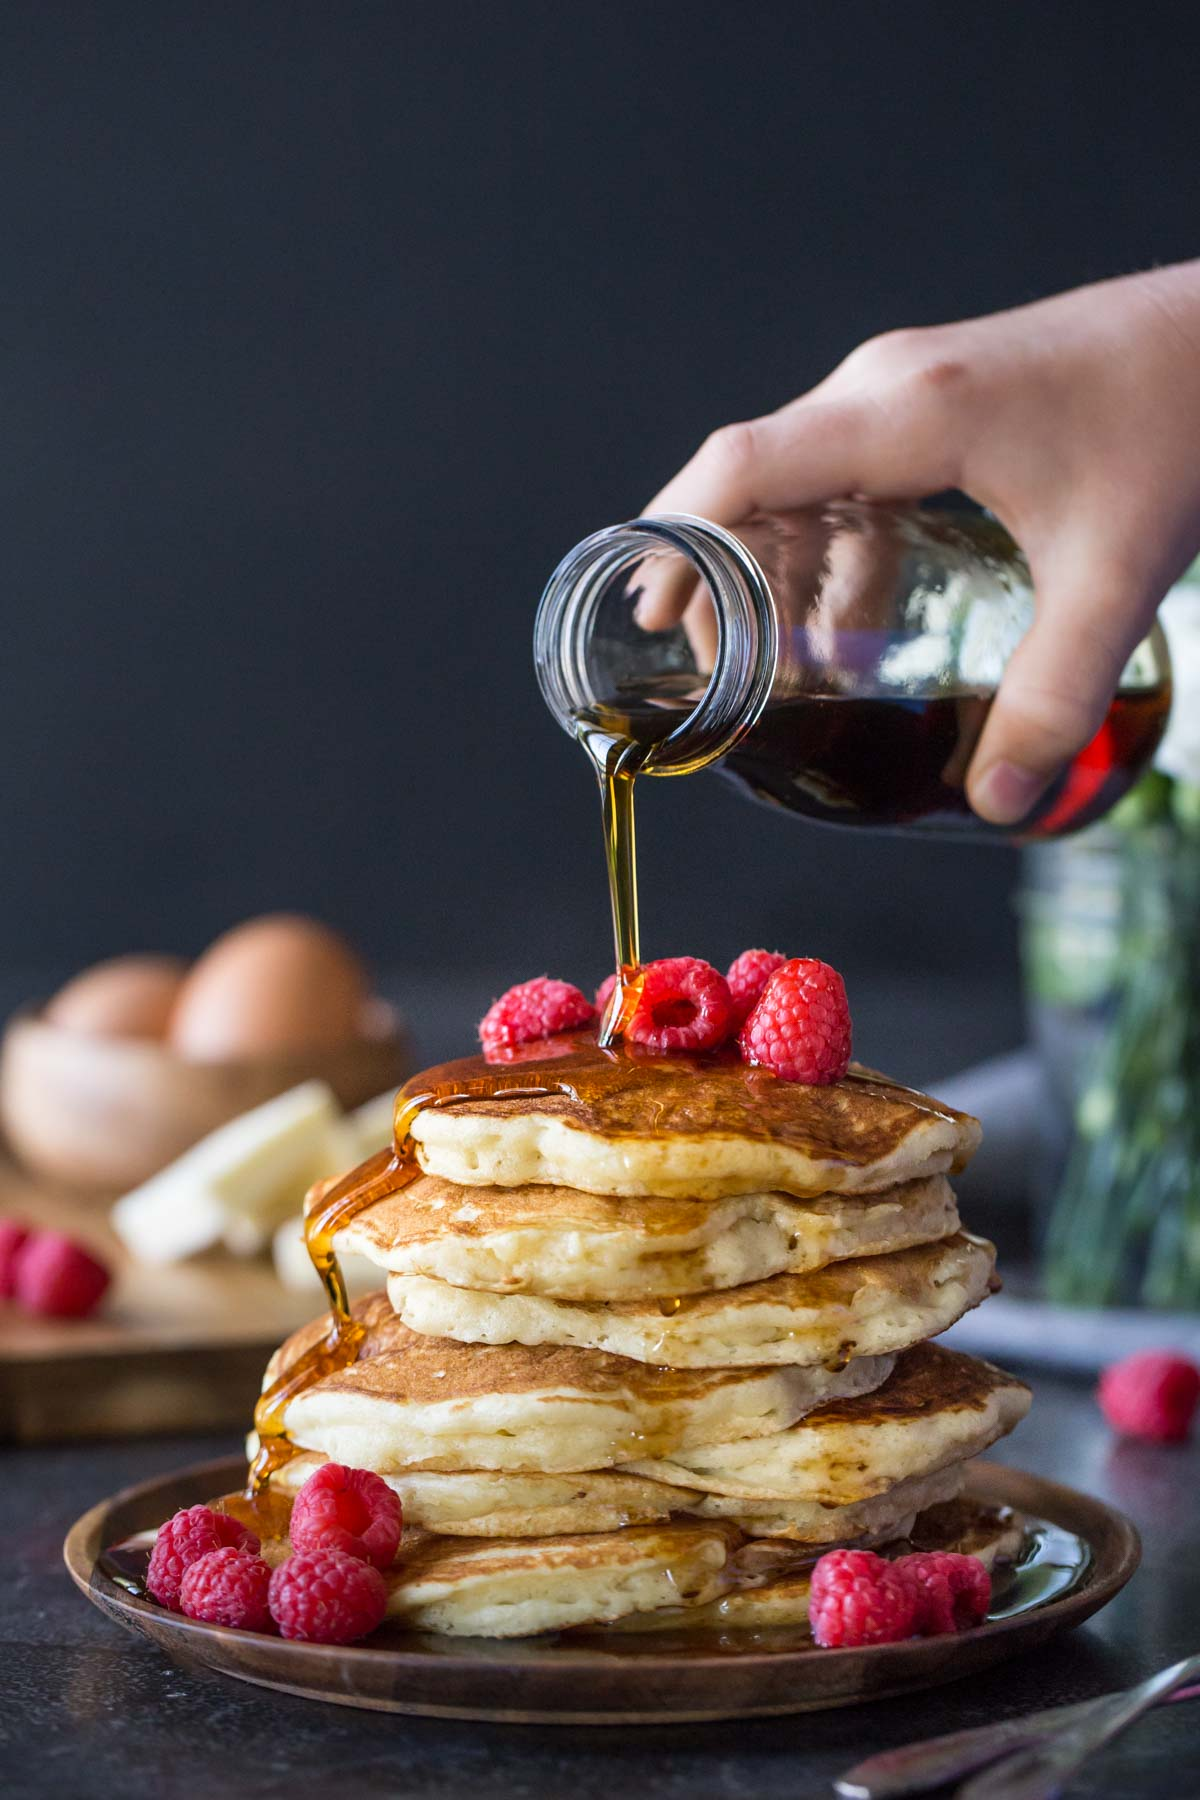 A stack of the Best Ever Buttermilk Pancakes on a plate, topped with fresh raspberries, with maple syrup being poured over them.